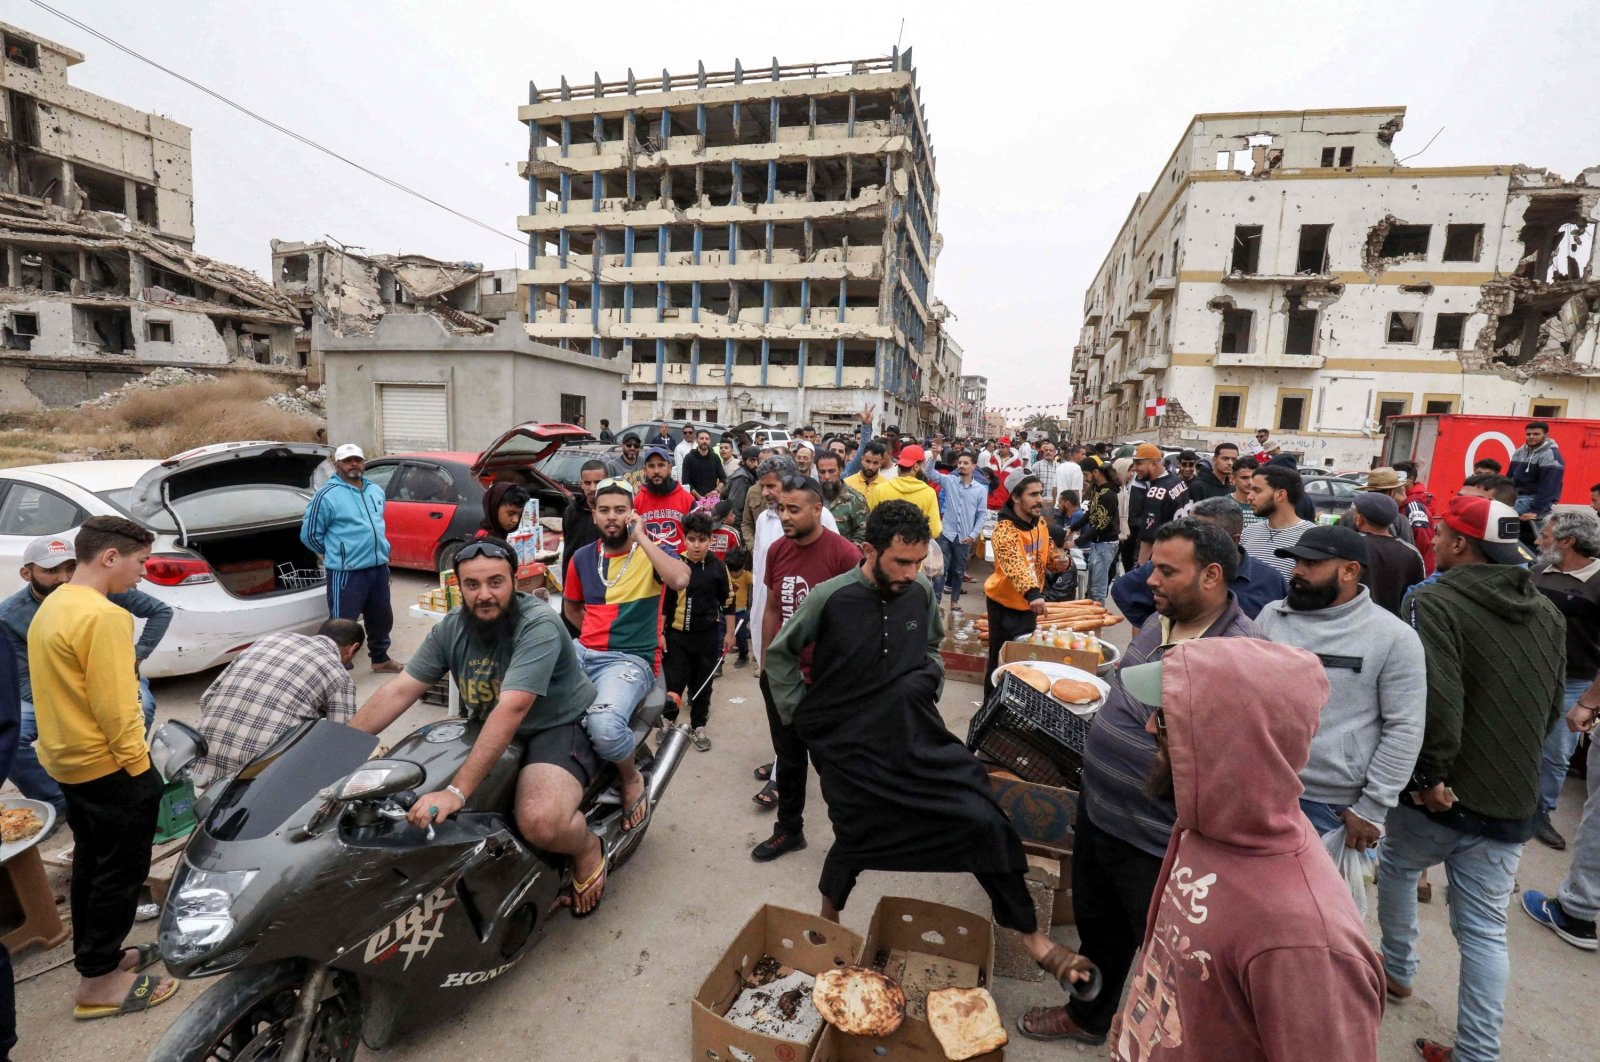 People shop at the Suq al-Hout (Whale Market) district during the Muslim holy month of Ramadan in the eastern city of Benghazi, Libya, on April 18, 2021. (AFP)